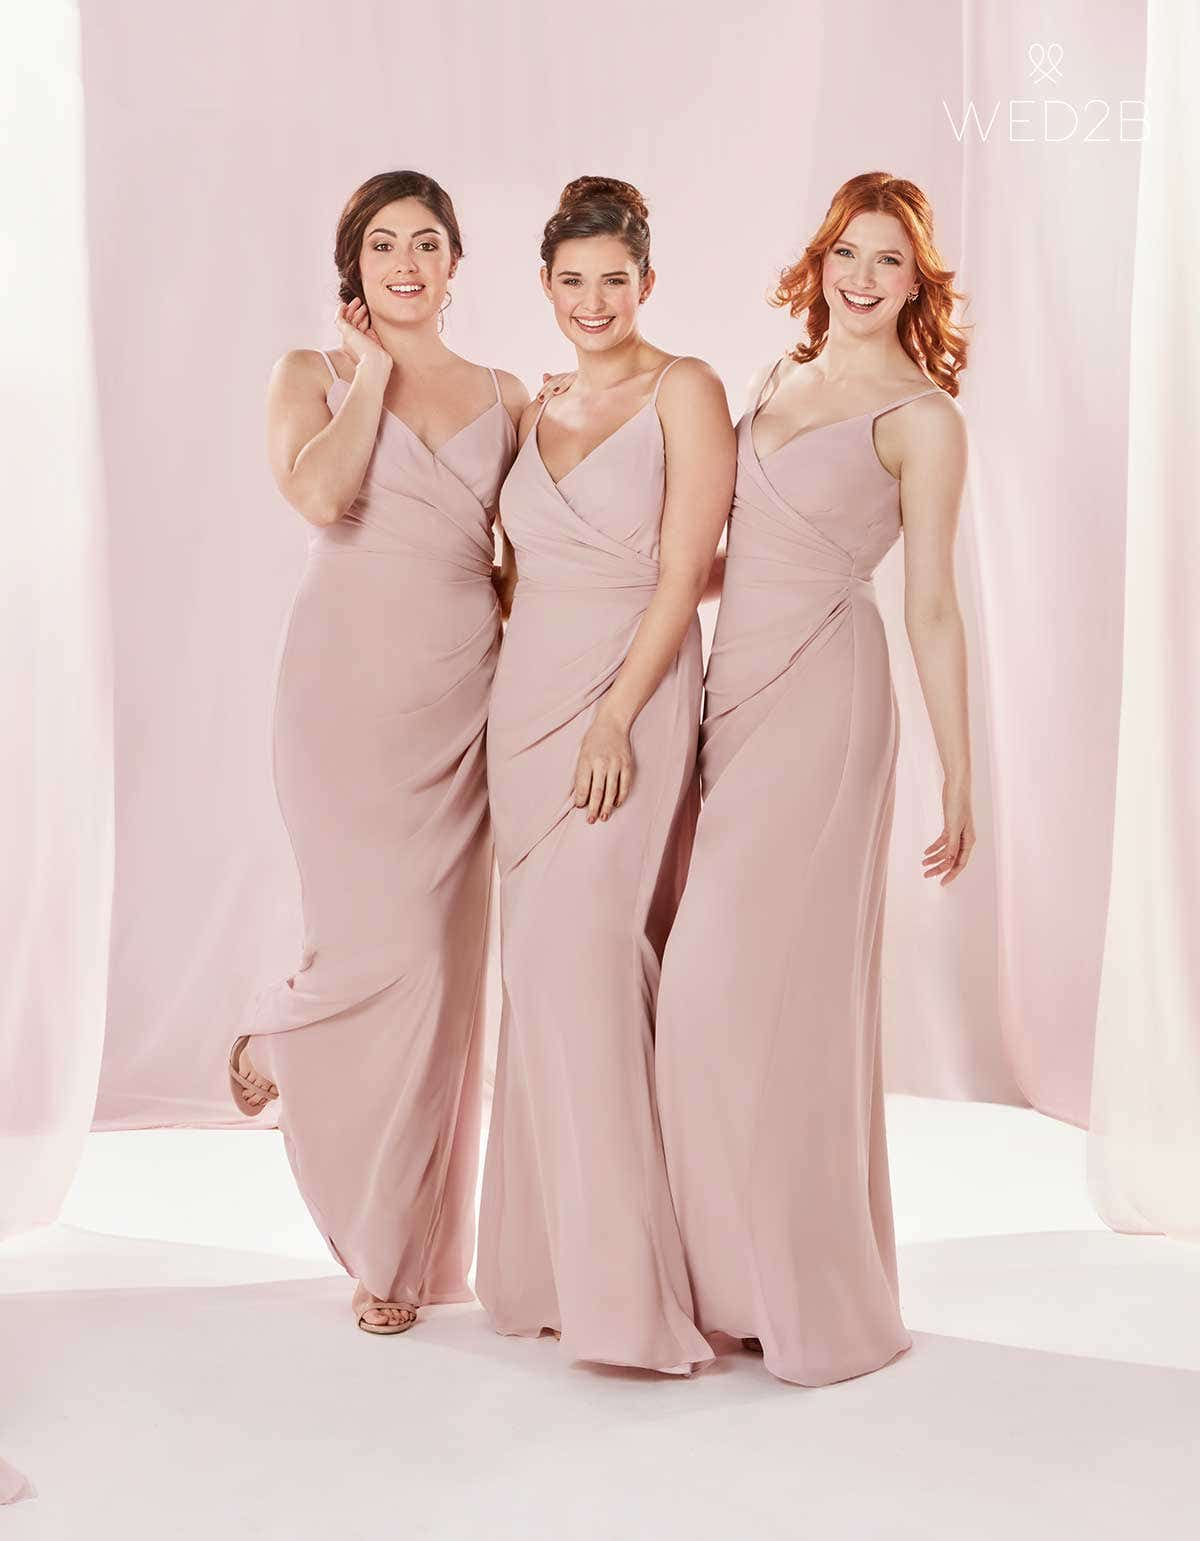 How to choose your bridesmaids dresses | WED2B-UK-BLOG